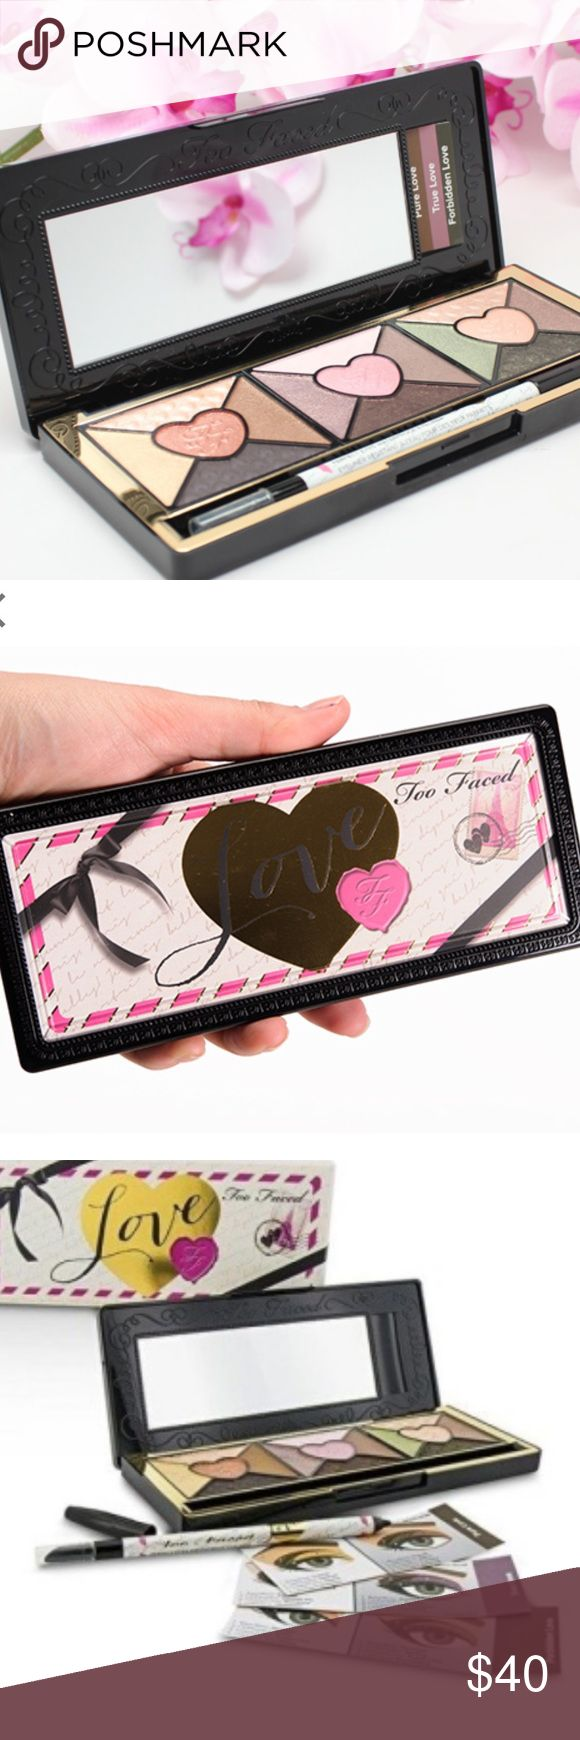 🎀🆕Too Faced Love Palette🎀 Sold out online. DETAILS MORE TO LOVE: • Advanced slurry technology transforms a liquid powder blend into silky, lightweight powders for multidimensional, intense color payoff • 15 passionately pigmented with shades in shimmer, pearl and matte finishes • Includes an exclusive, full size black Perfect Eyes Eye Liner dressed in Love • Signature how-to Glamour Guide offers step-by-step application instructions for creating six love-worthy looks Sephora Makeup…